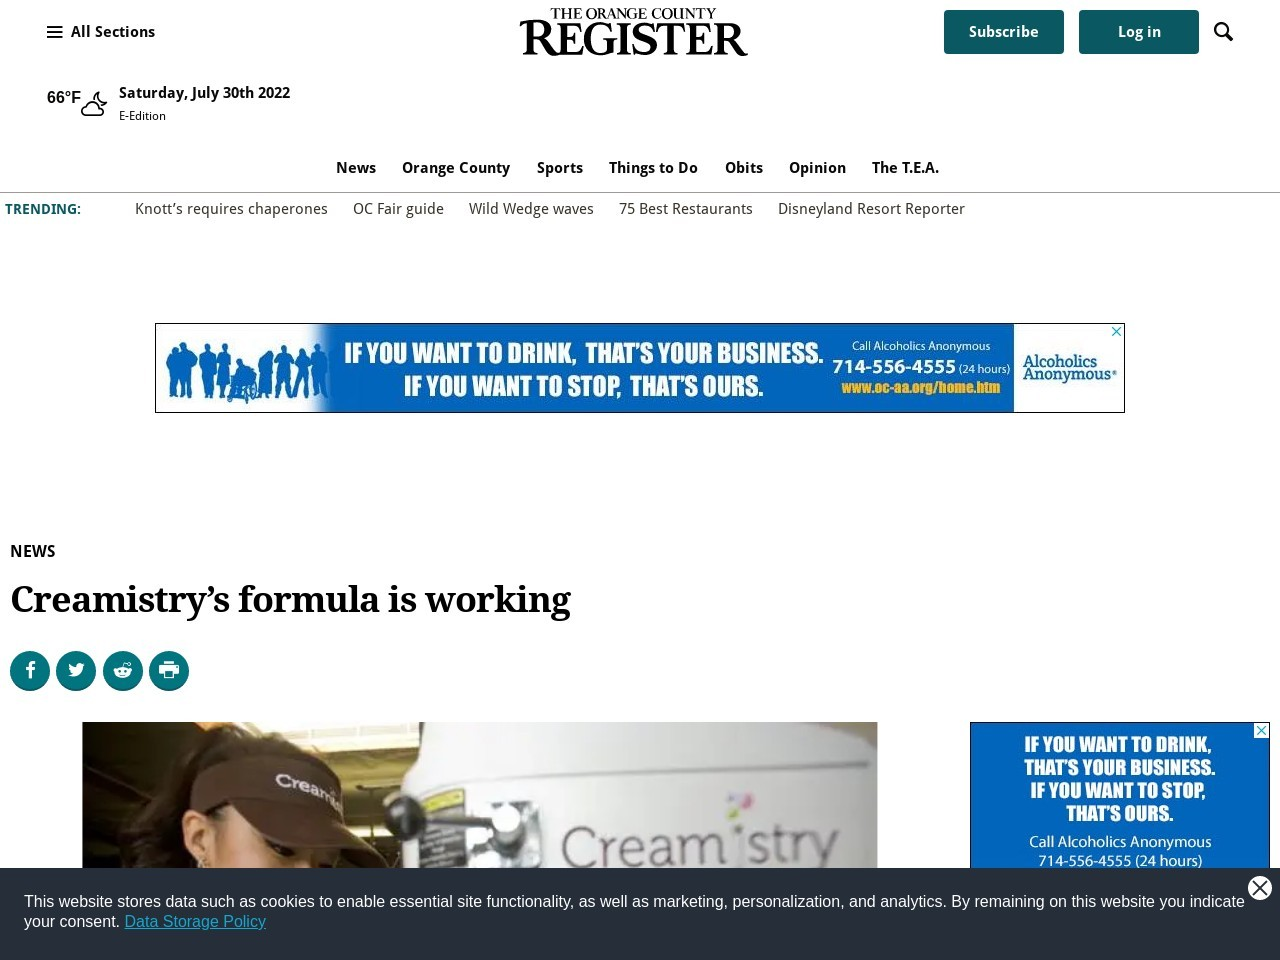 Creamistry's formula is working